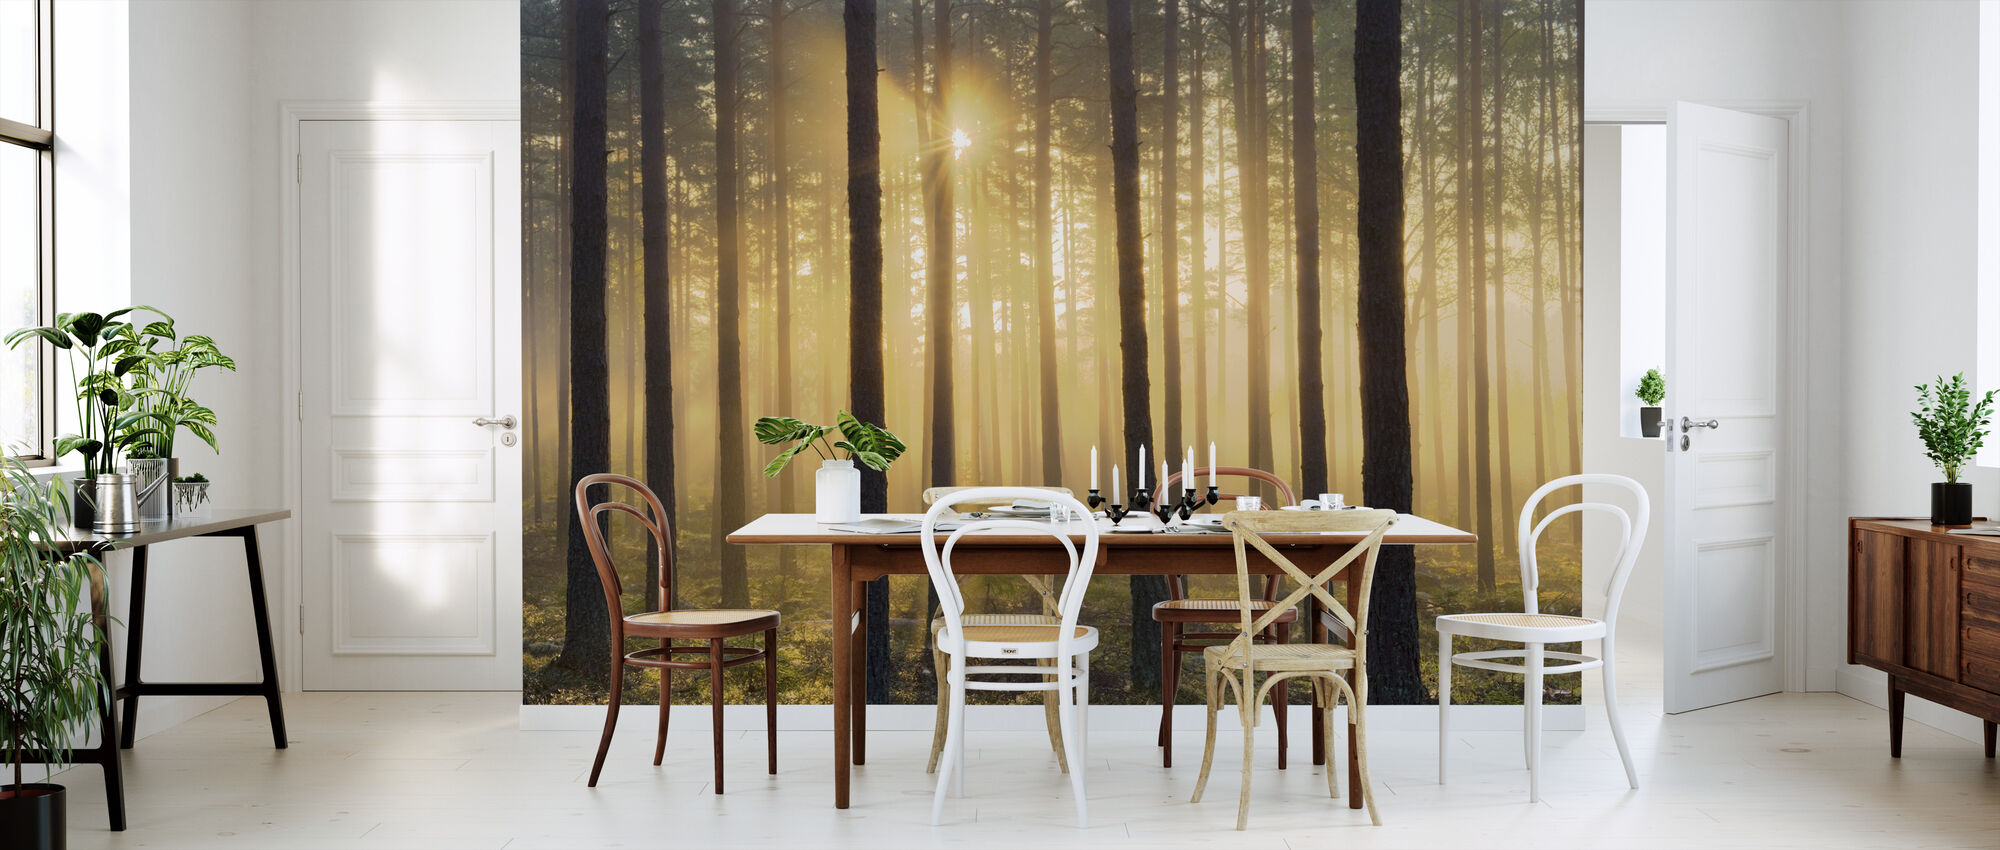 Pine Tree Morning - Wallpaper - Kitchen